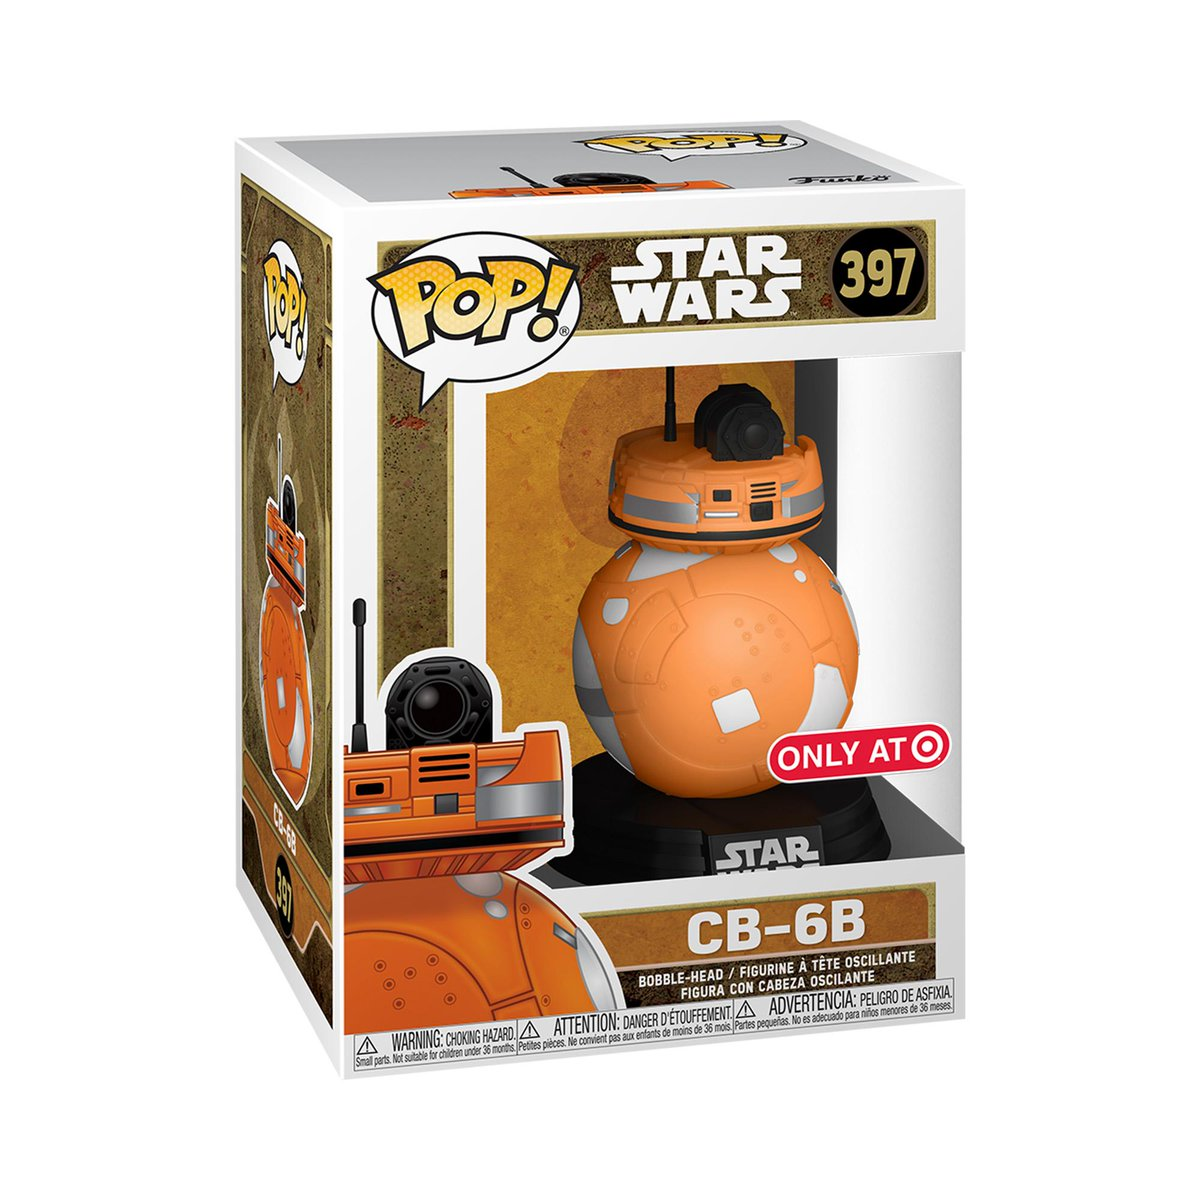 RT & follow @OriginalFunko for the chance to WIN this @Target exclusive CB-6B Pop! #Funko #Funkogiveaway #StarWars